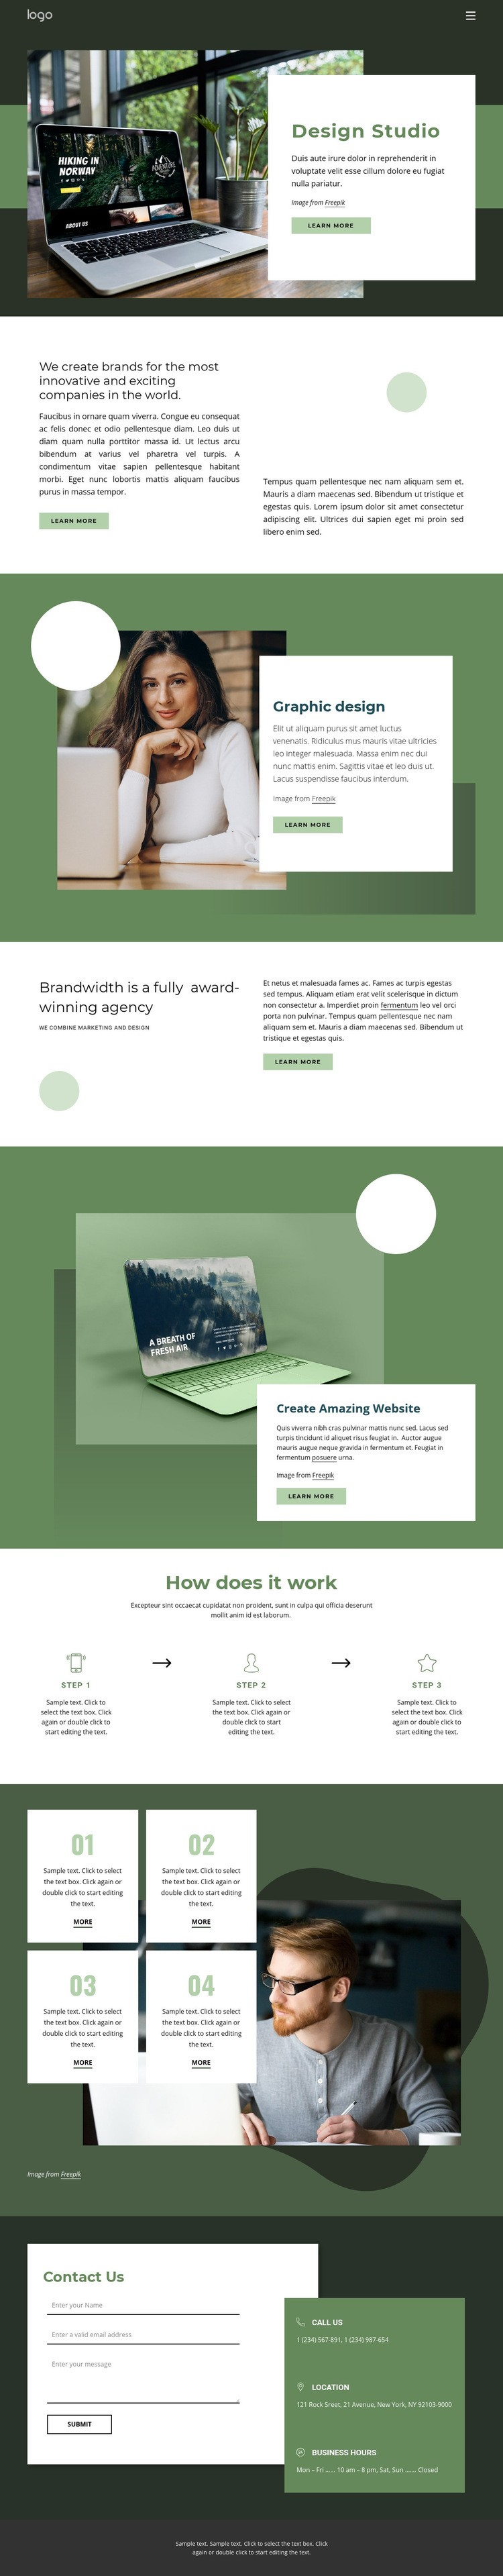 Design inspiration from nature Web Page Design